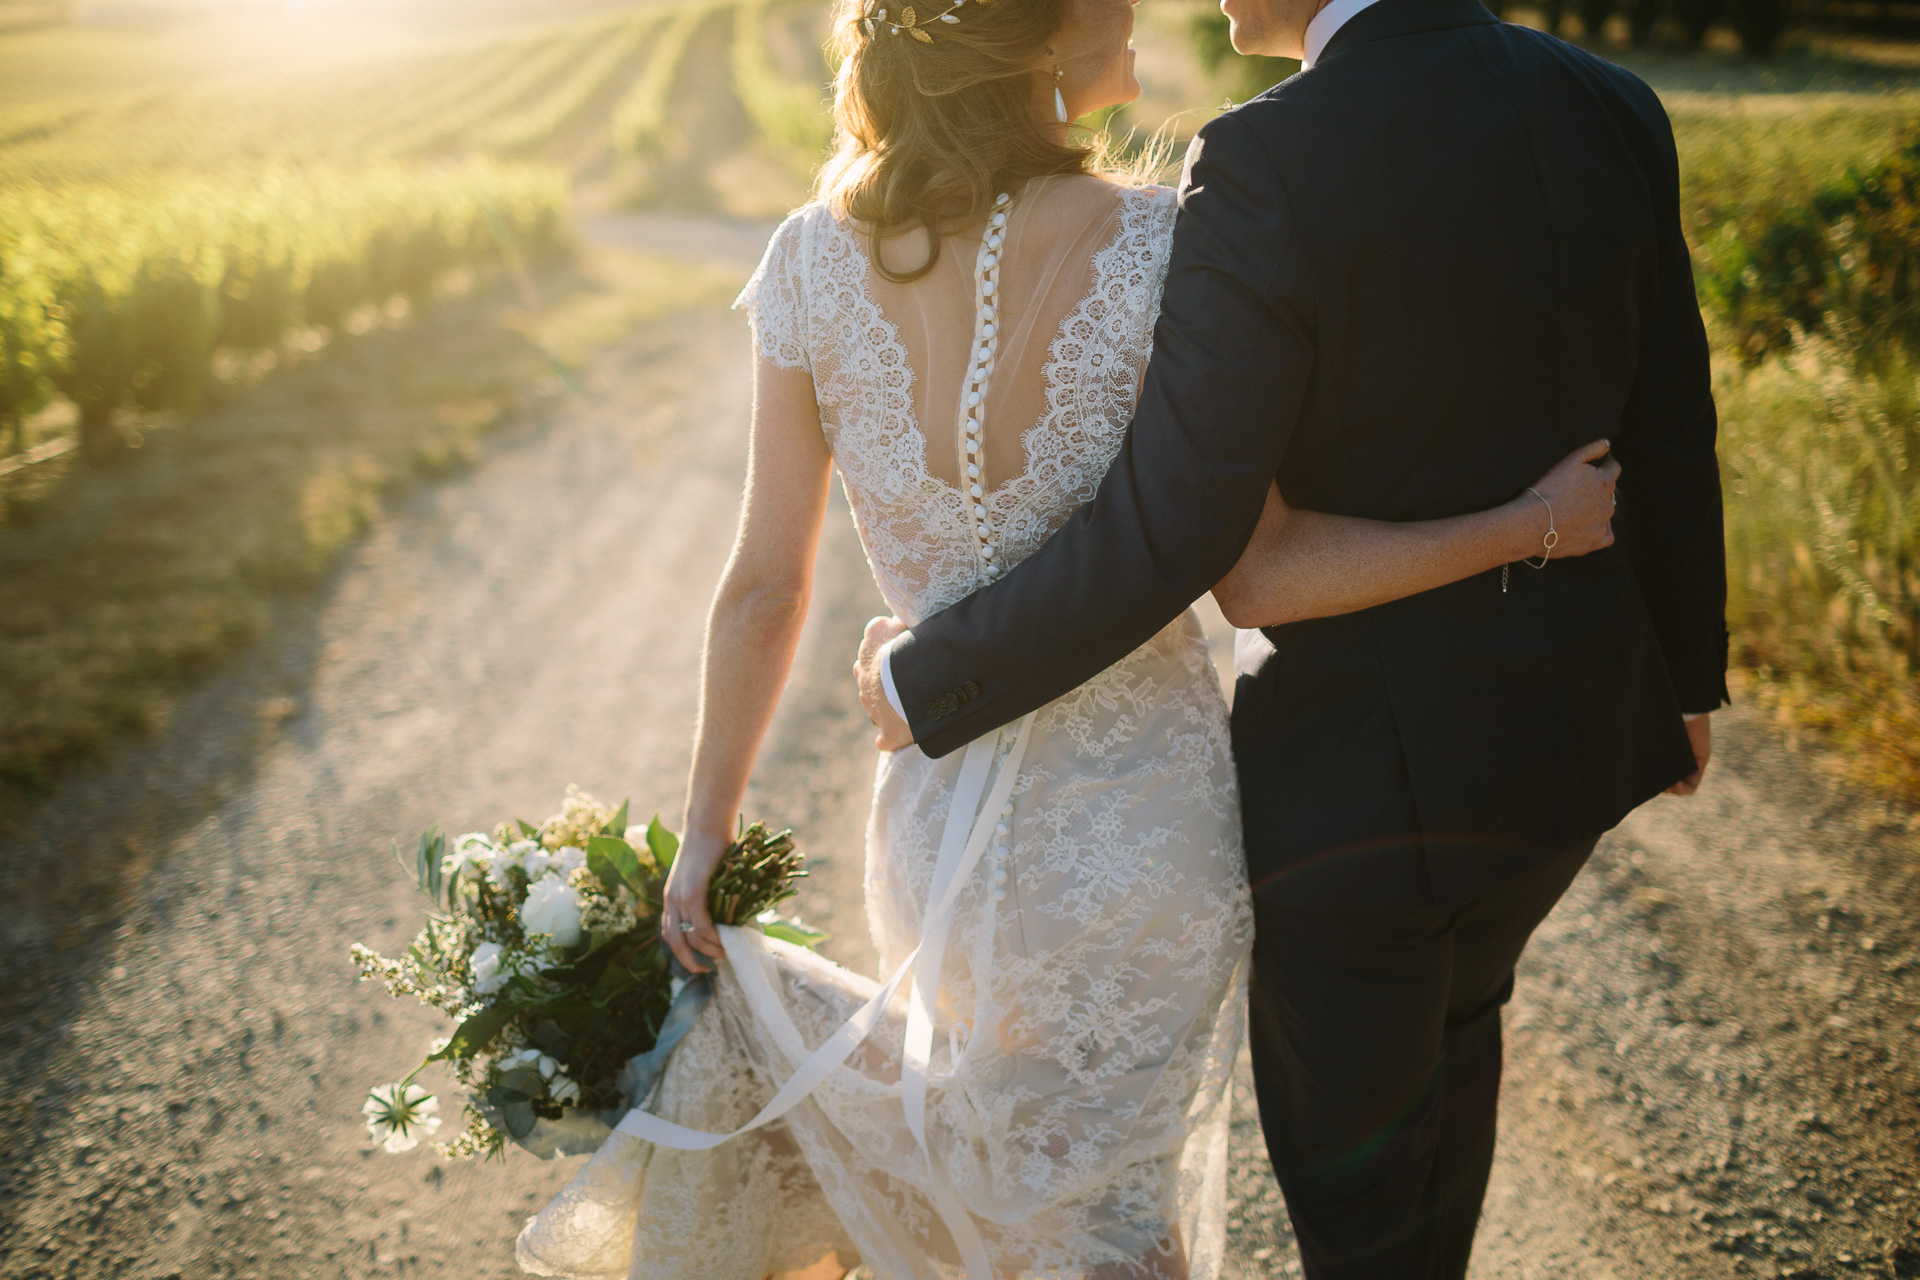 bride and groom in vineyard with flowers and back of dress detail , buttons, lace , flowercrown